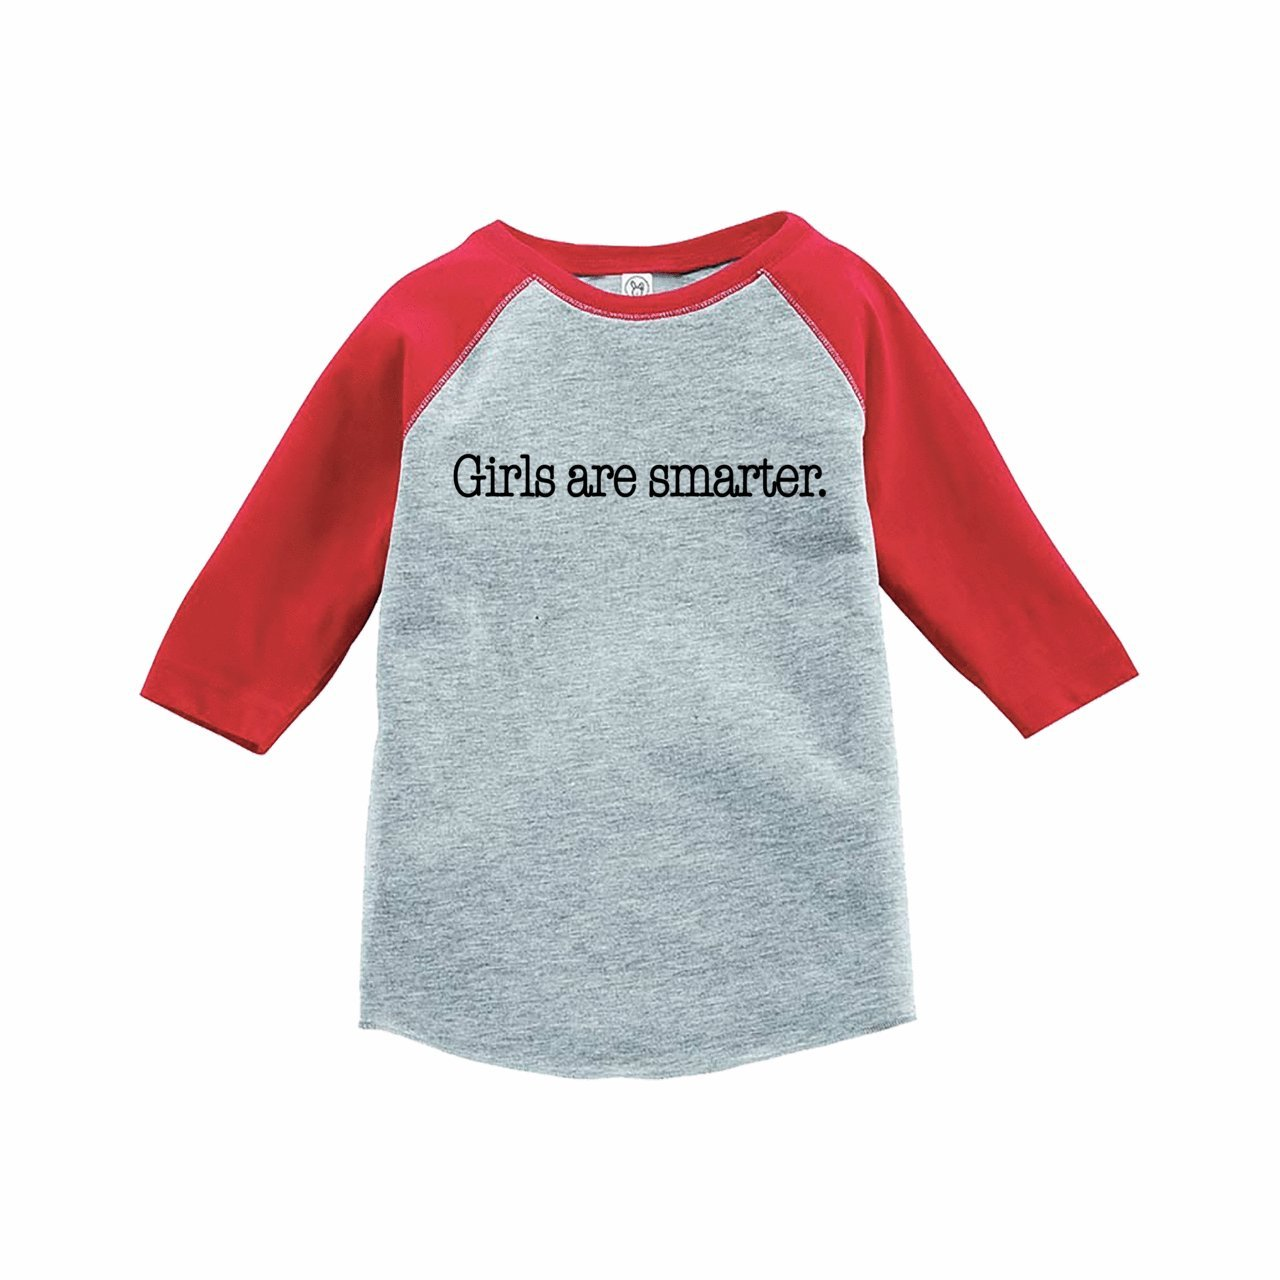 7 ate 9 Apparel Funny Kids Girls are Smarter Baseball Tee Red